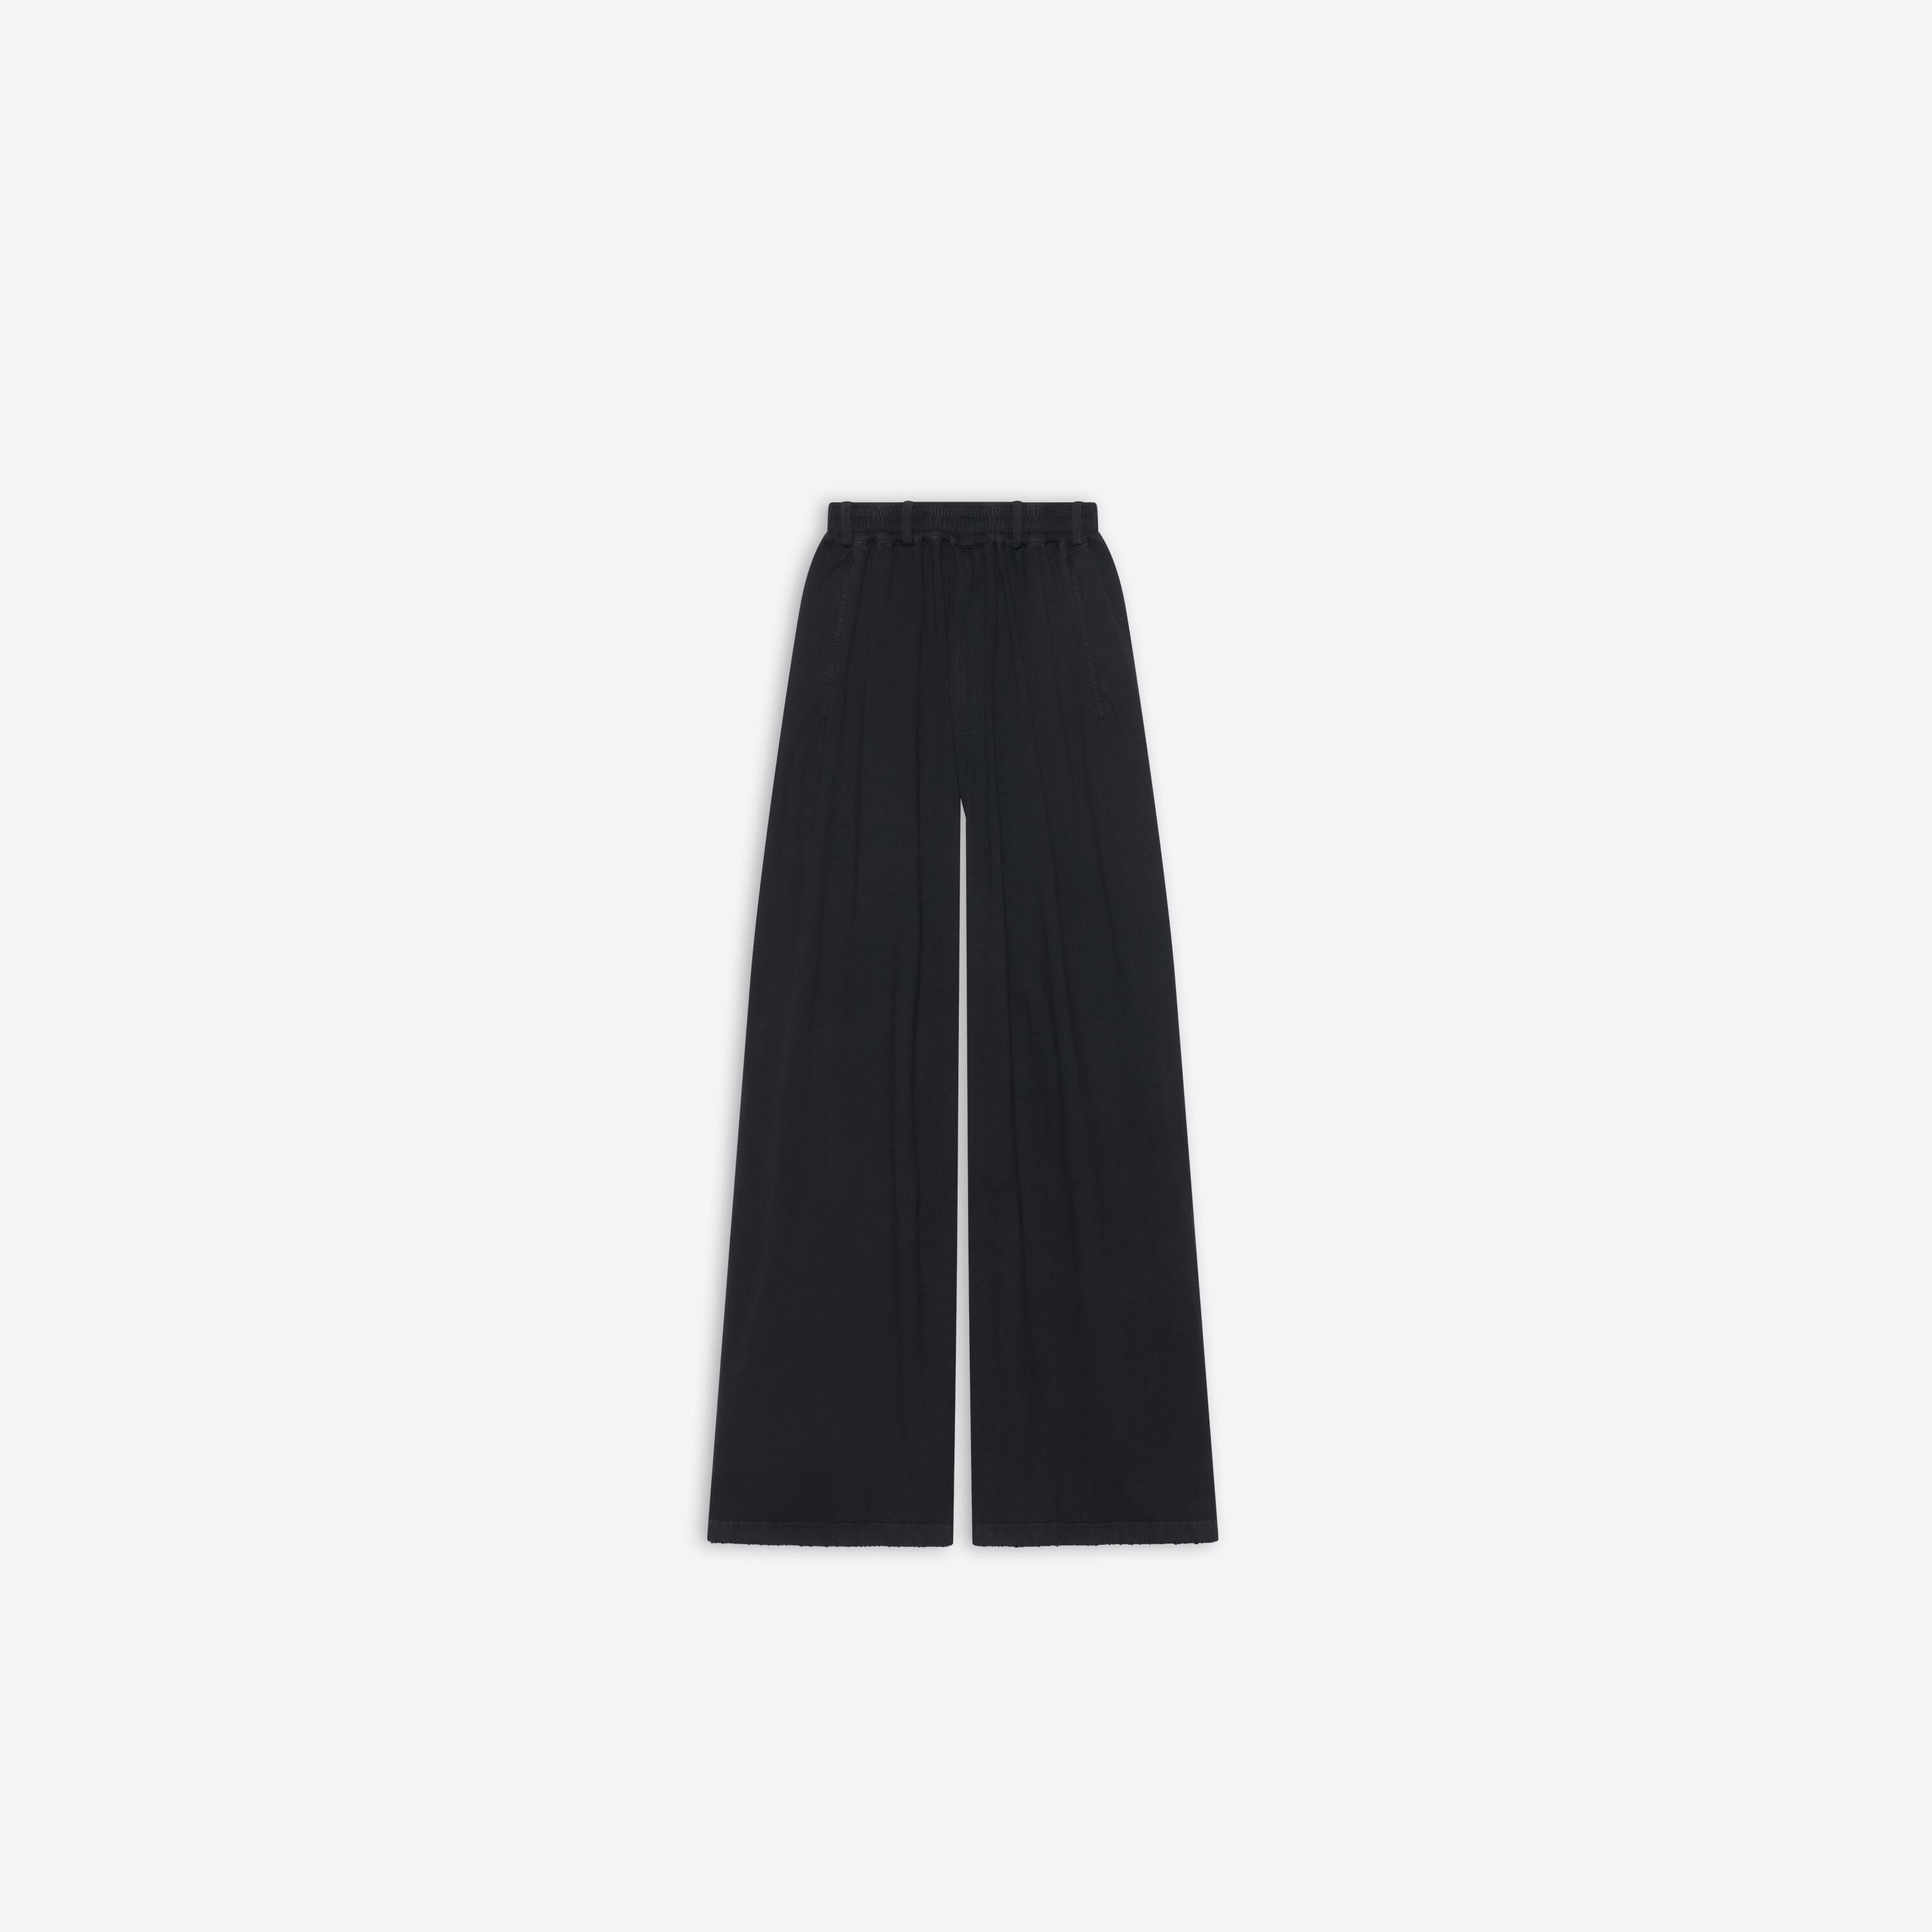 Oversize Worn-Out Pants 0